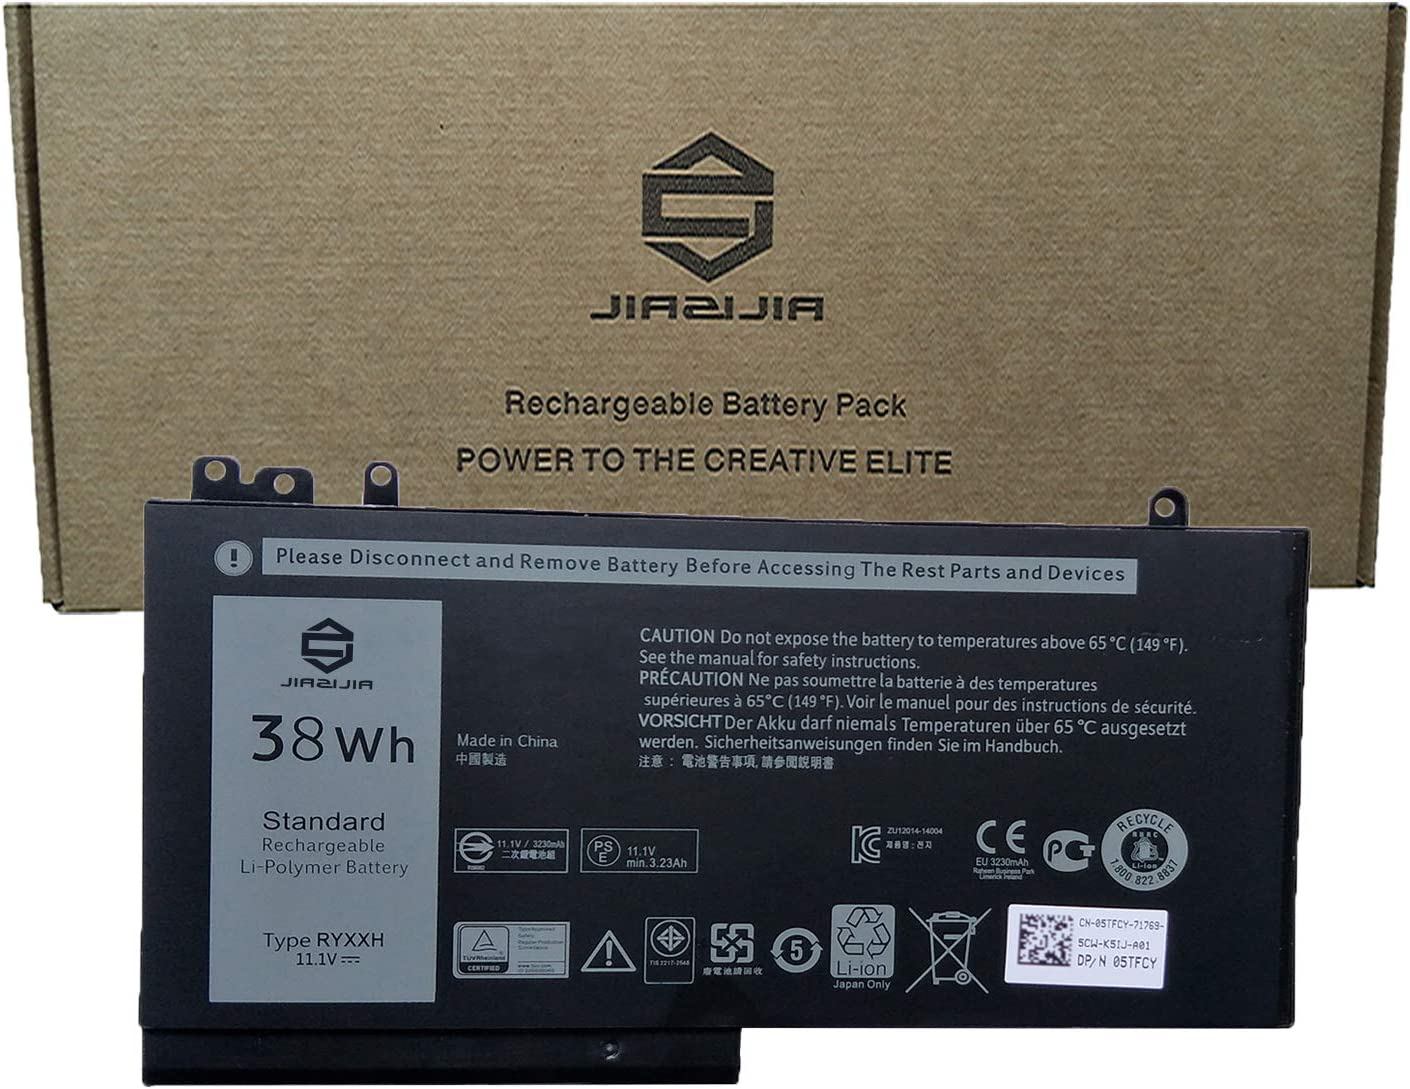 JIAZIJIA RYXXH Laptop Battery Replacement for Dell Latitude 5250 5450 5550 E5250 E5450 E5550 3150 3160 Series Notebook 2CP9F 451-BBLJ 5TFCY 05TFCY 0VY9ND VY9ND Black 11.1V 38Wh 3230mAh 3-Cell